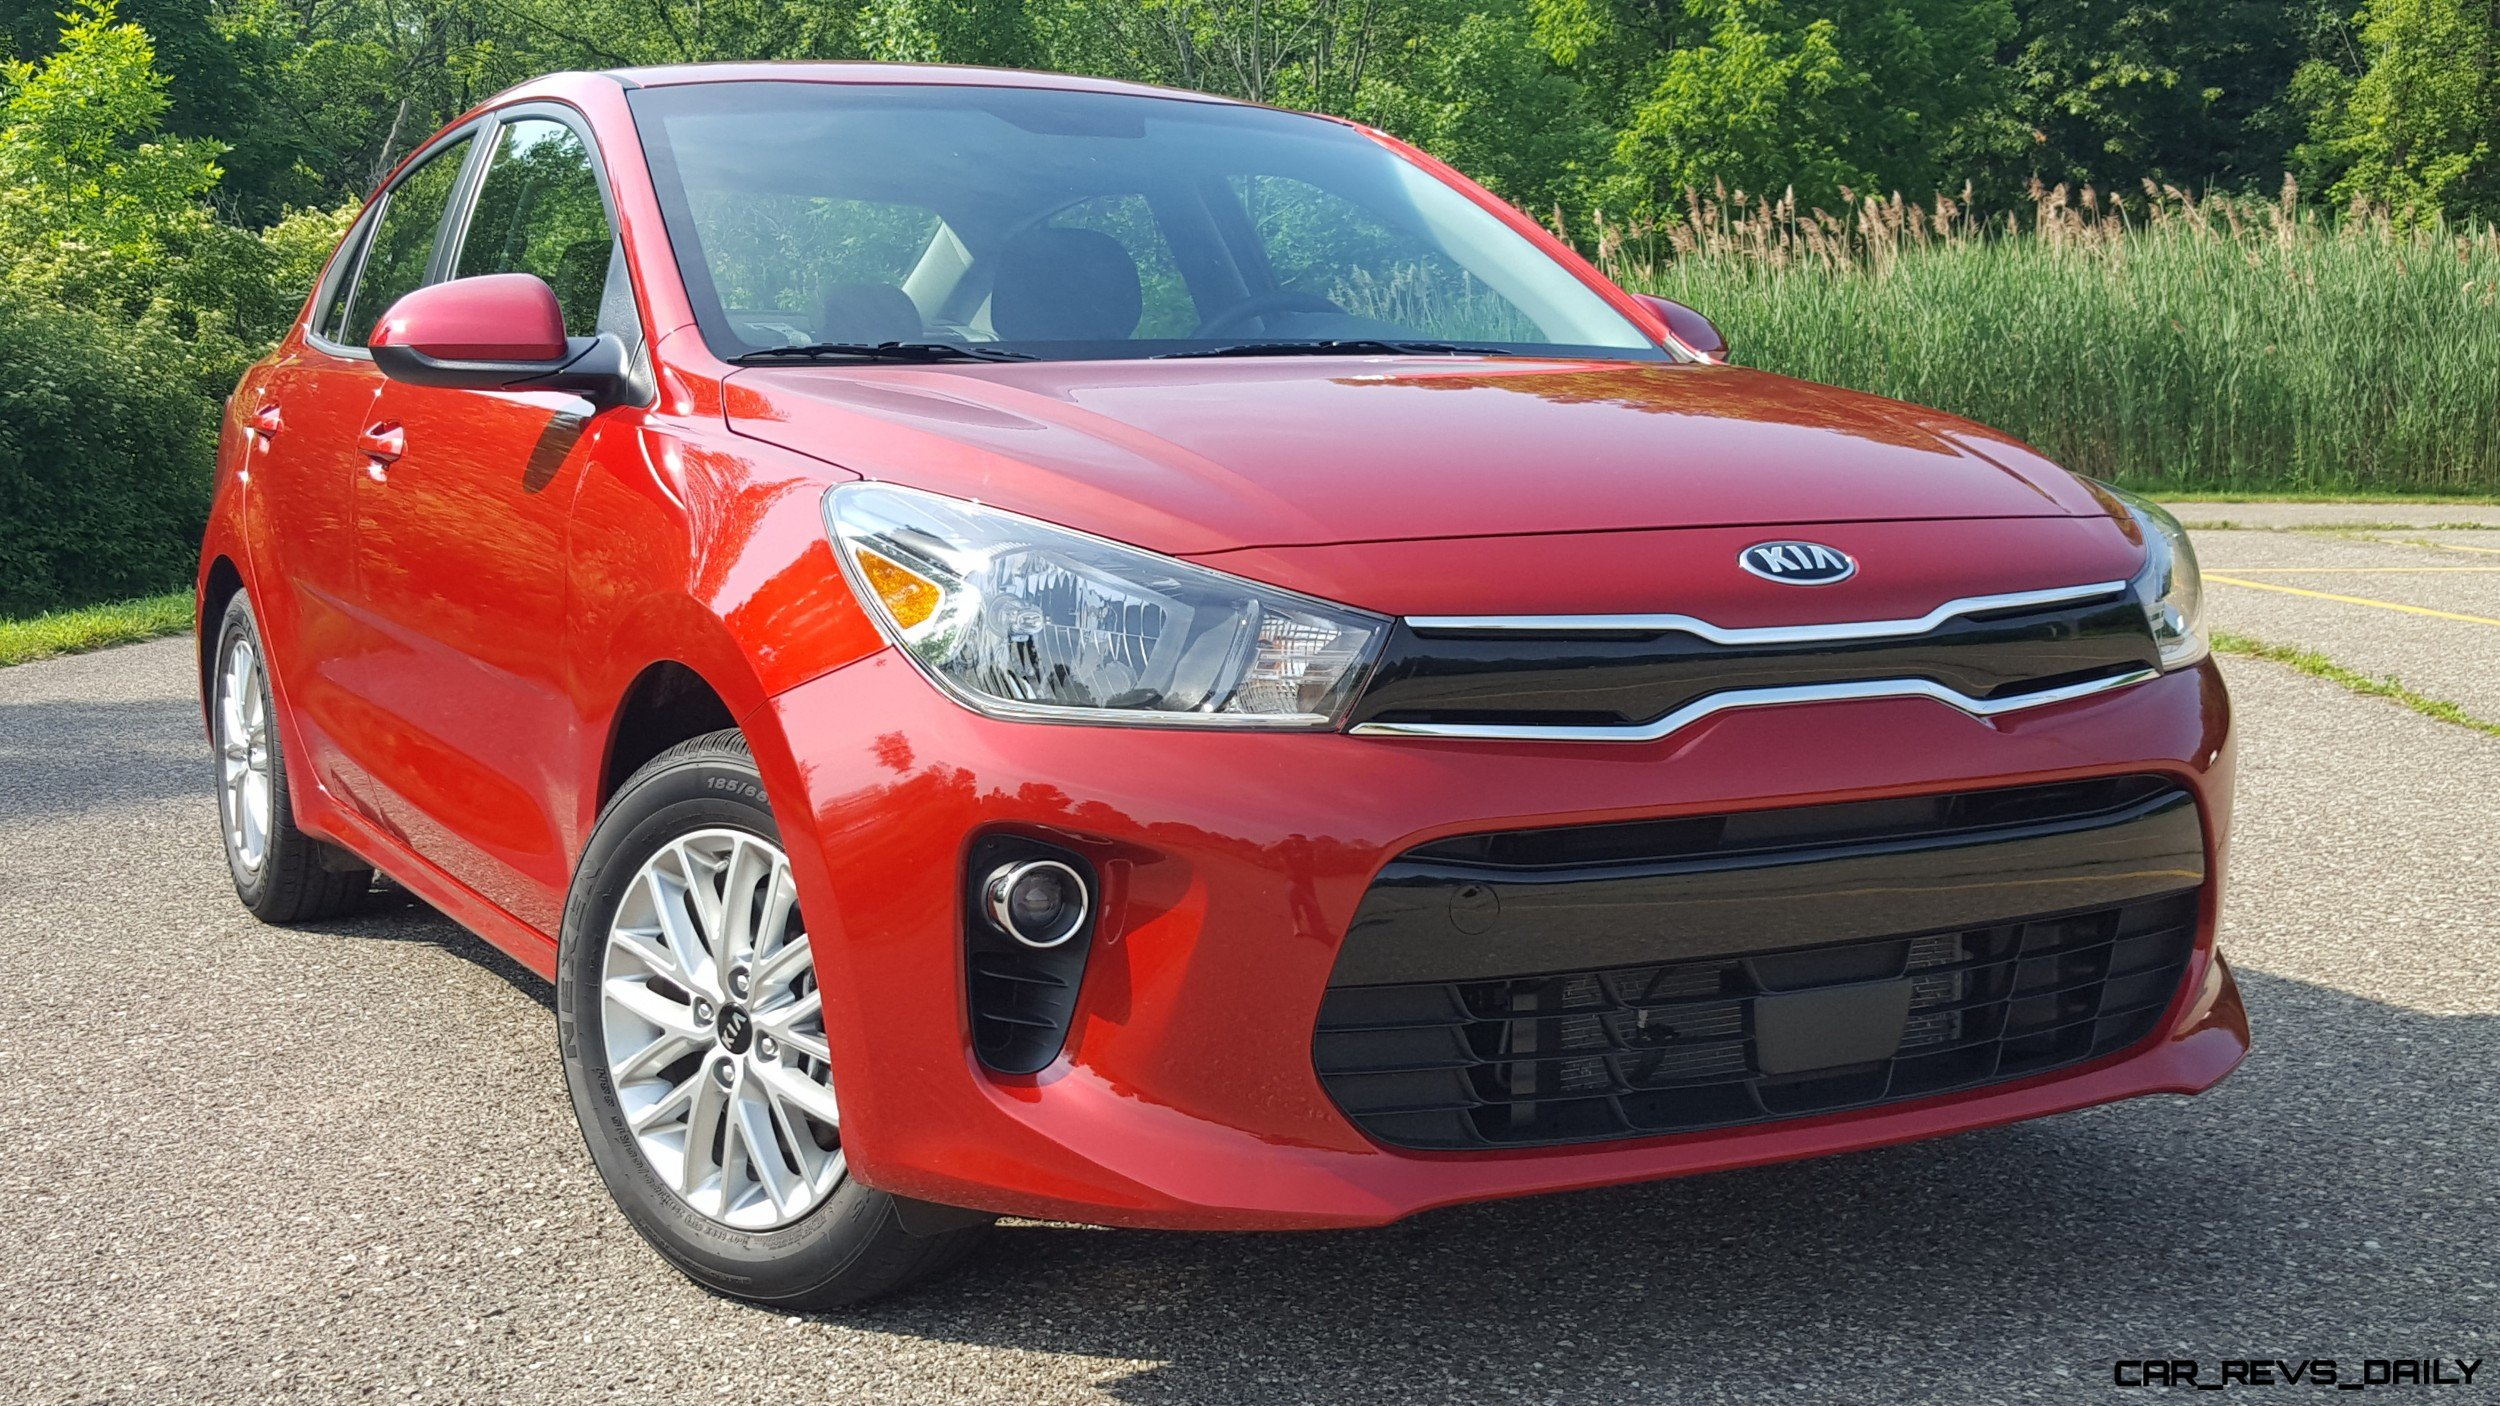 2022 kia rio sedan automatic changes, color options